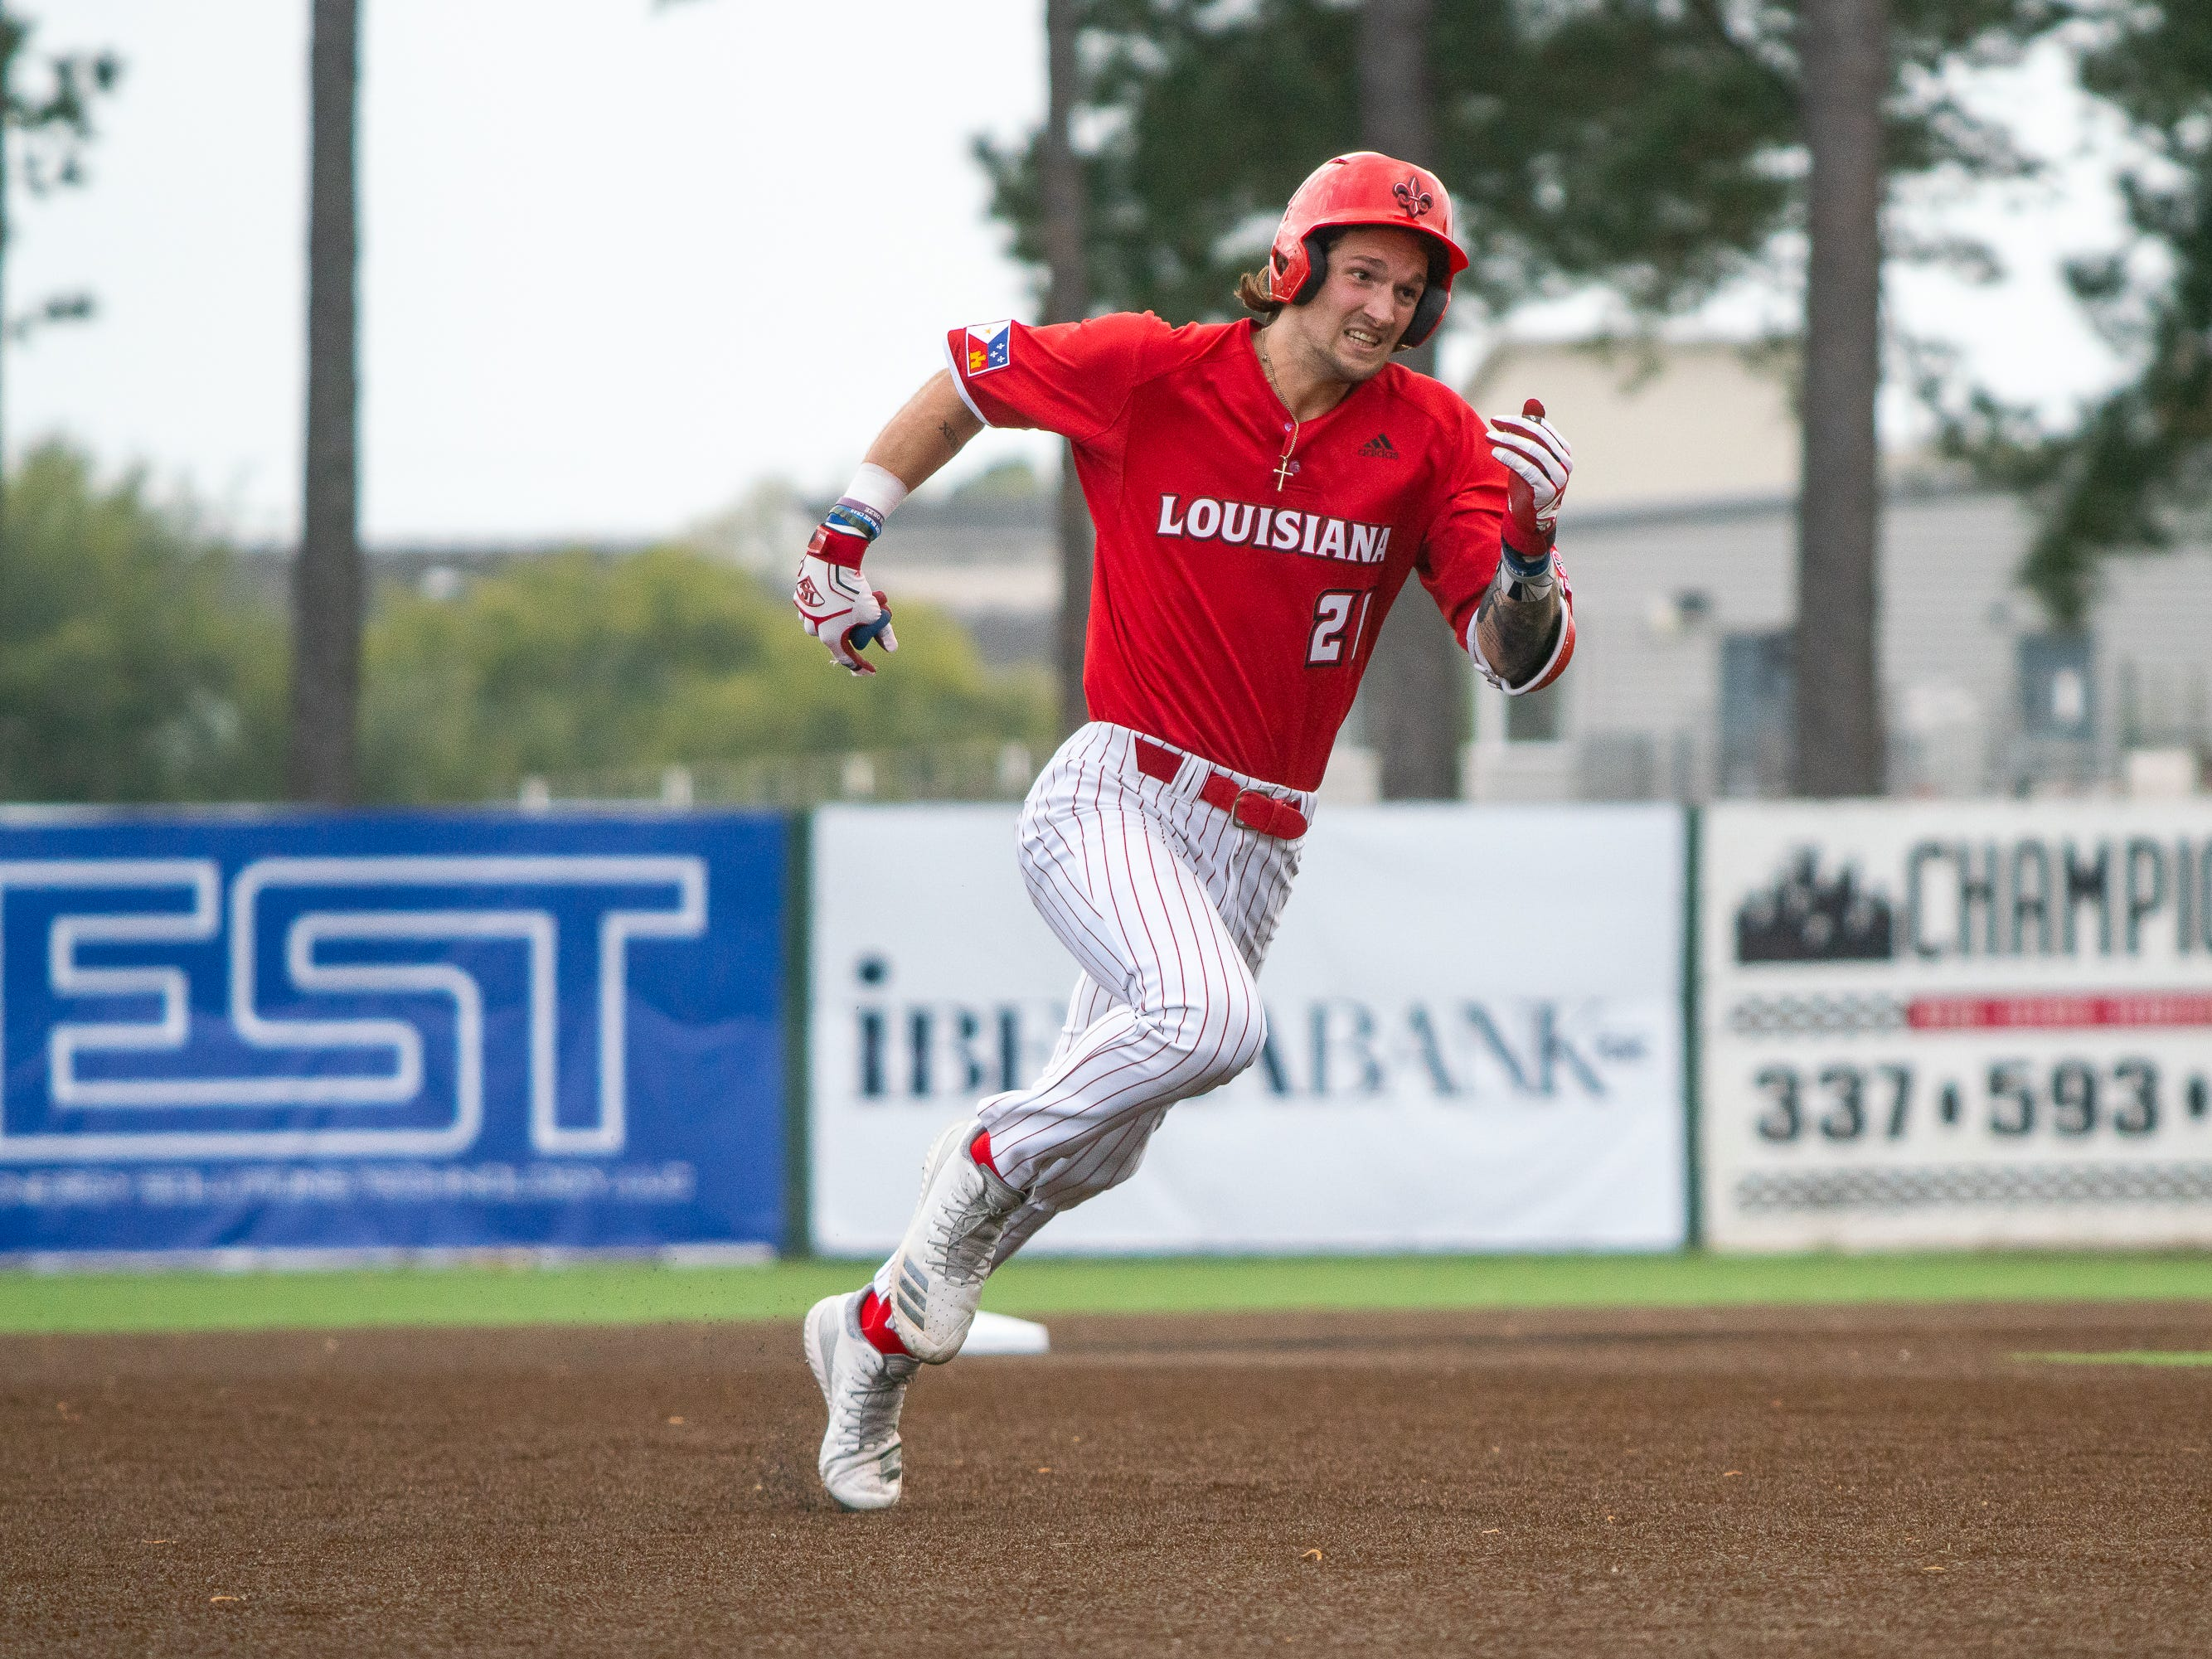 UL's Orynn Veillon sprints to third base as the Ragin' Cajuns take on the Loyola-Marymount Lions at M.L. Tigue Moore Field on Saturday, March 9, 2019.